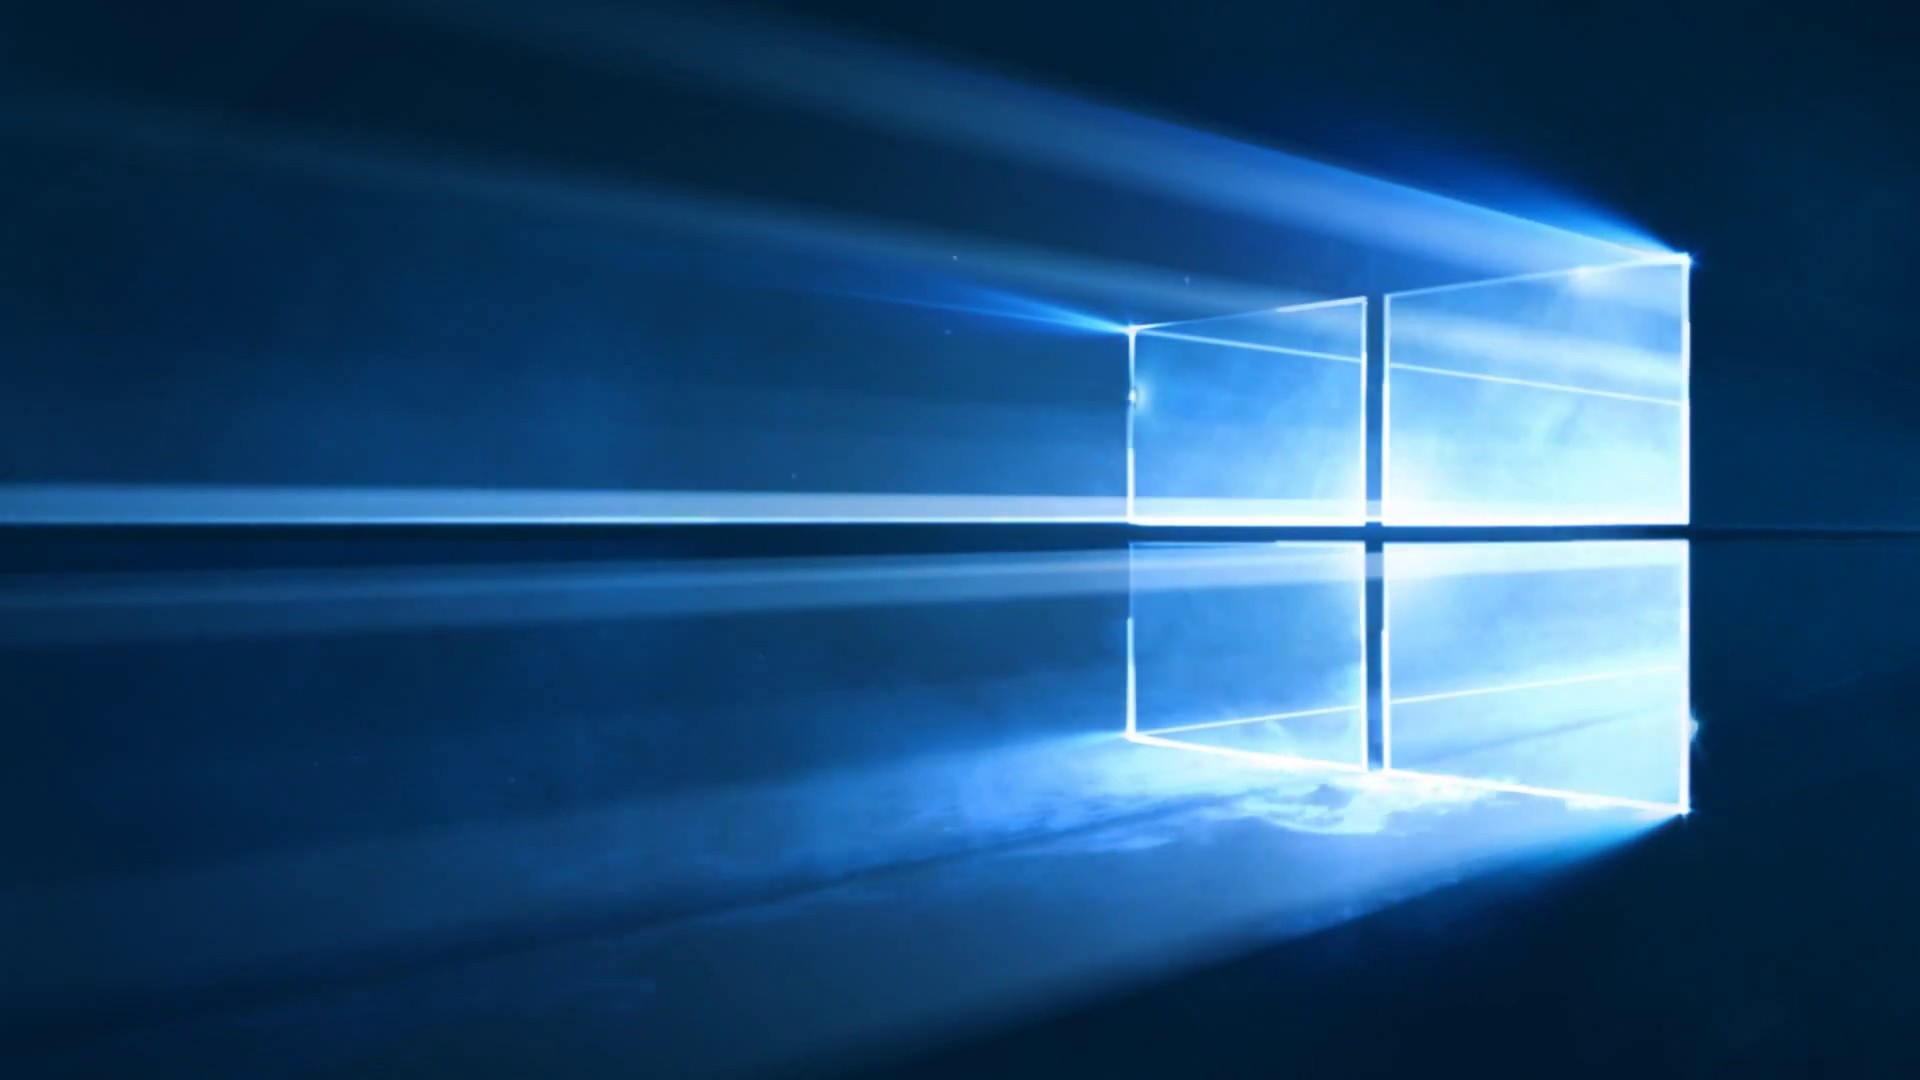 So this is the new default wallpaper for windows 10 1920x1080